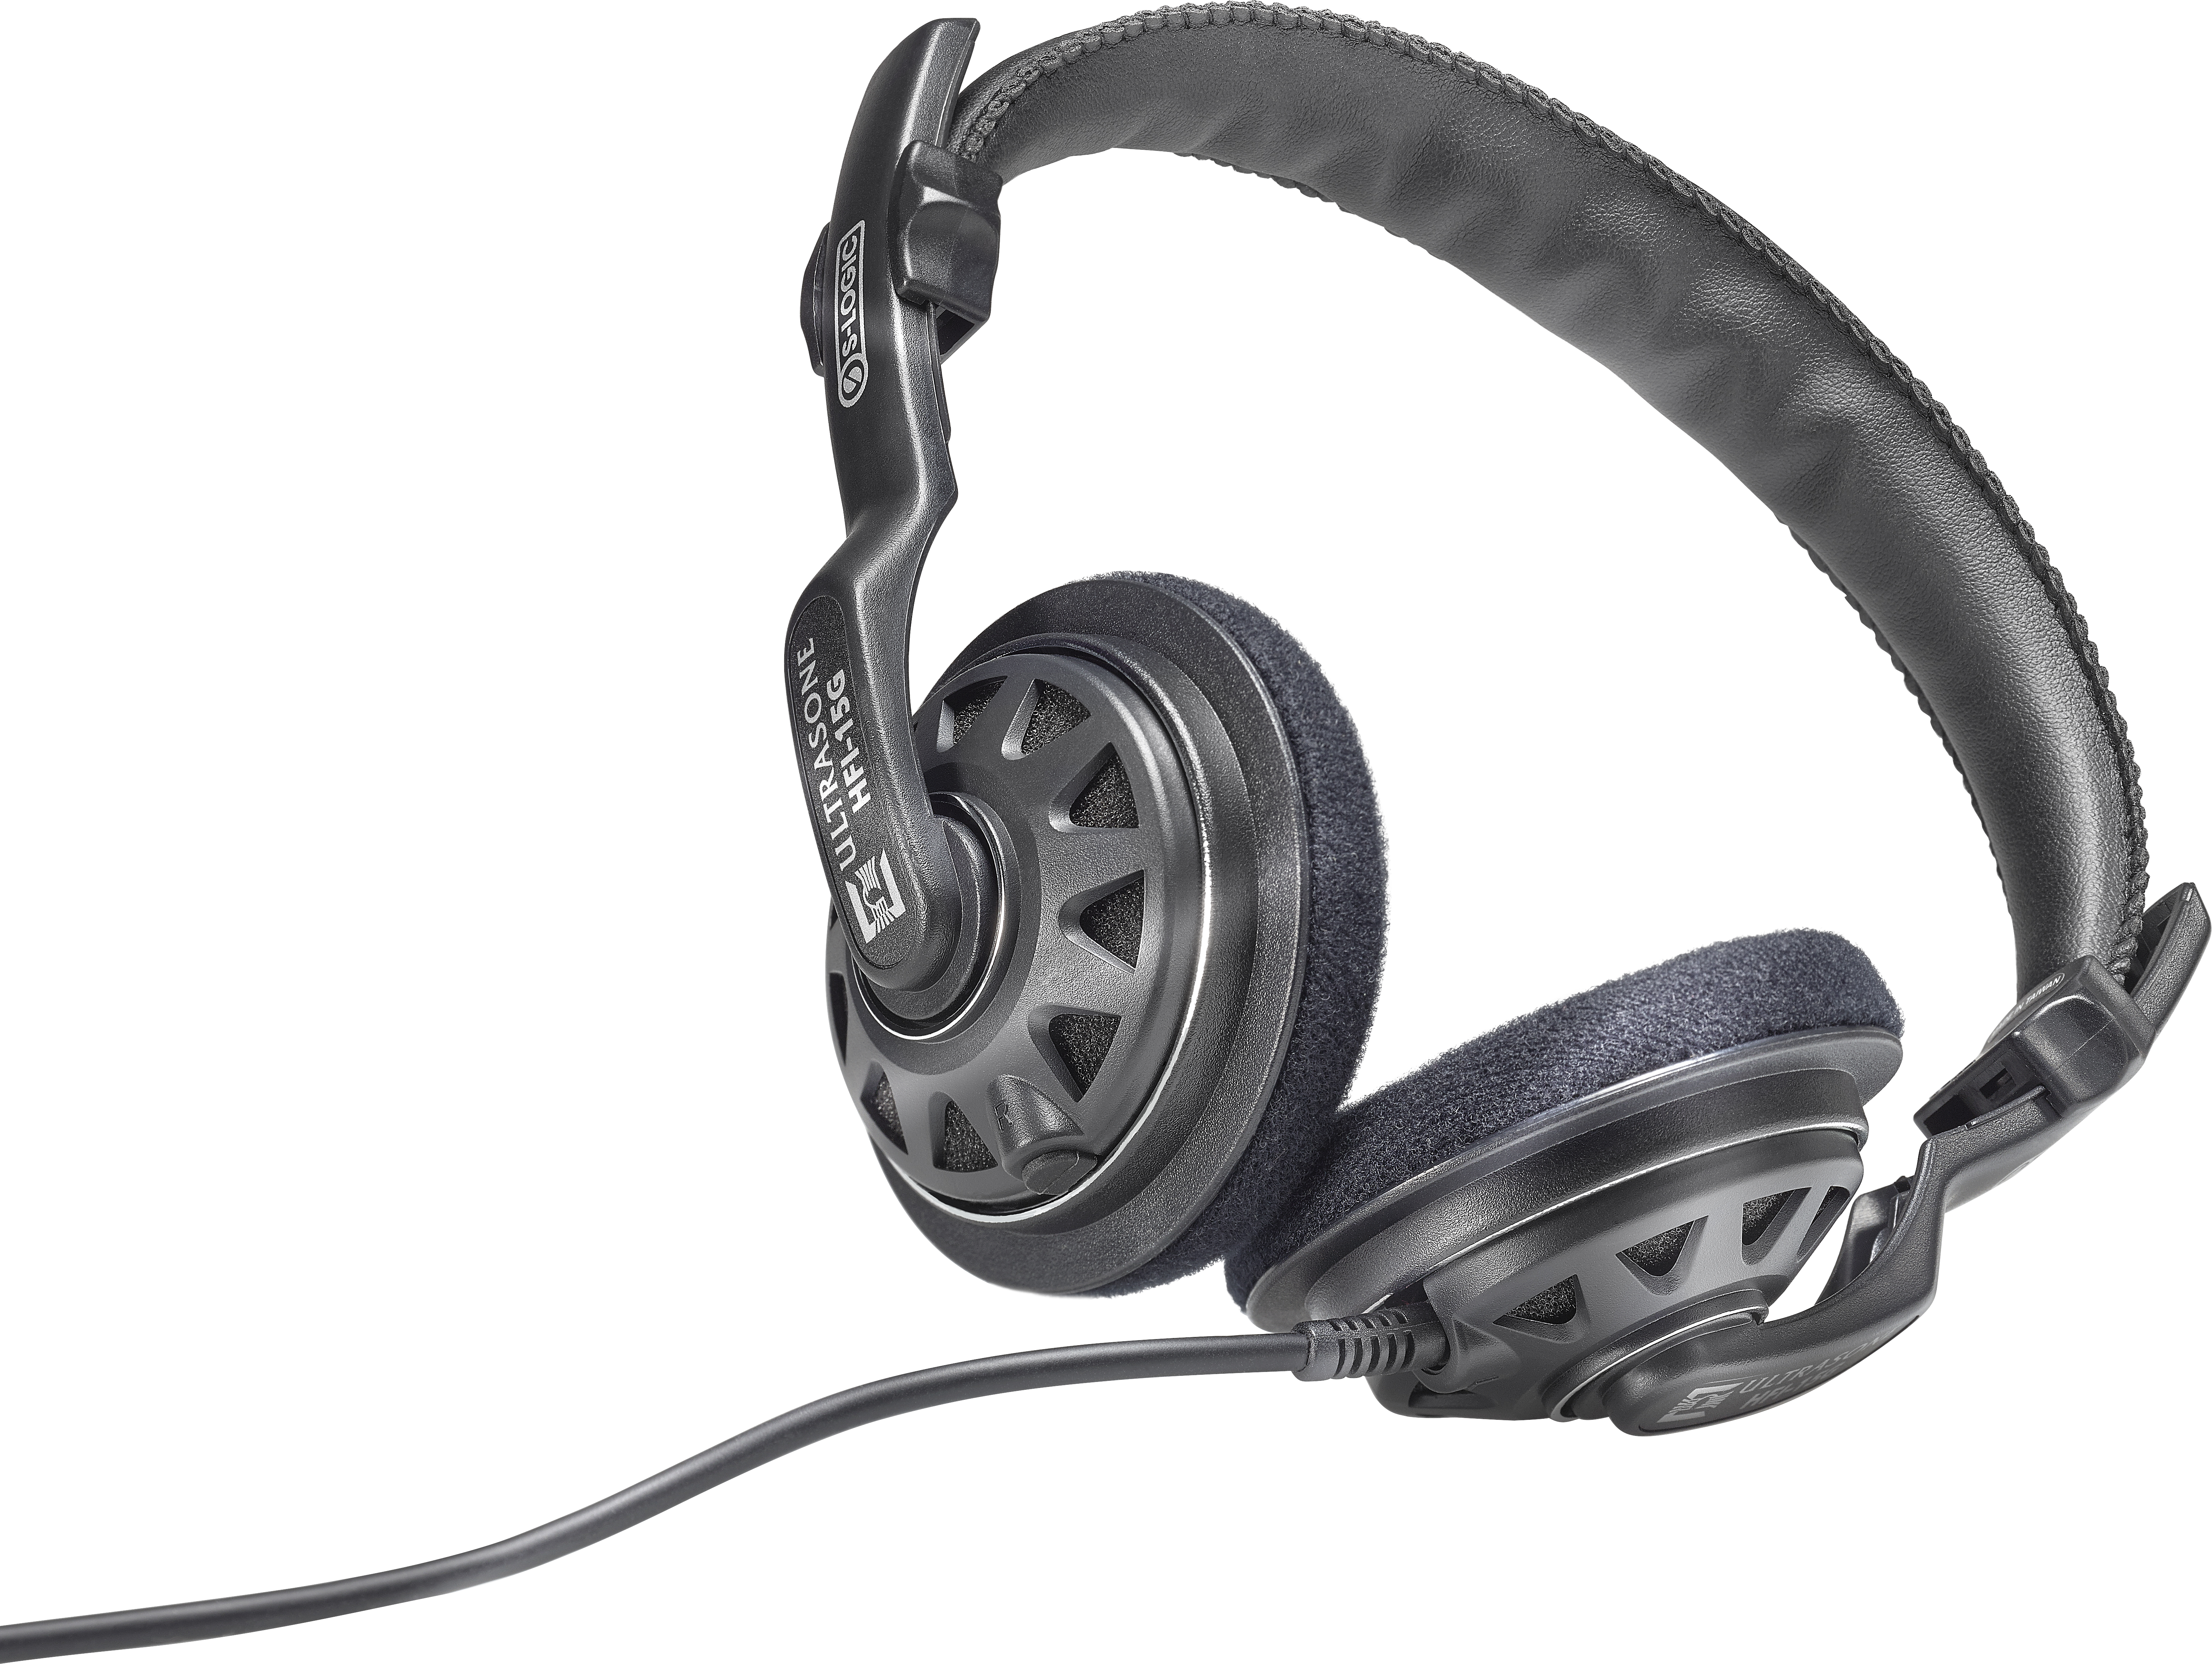 audio - CASQUES, ECOUTEURS, EAR MONITOR - CASQUES - ULTRASONE - ULTHF15 - Royez Musik